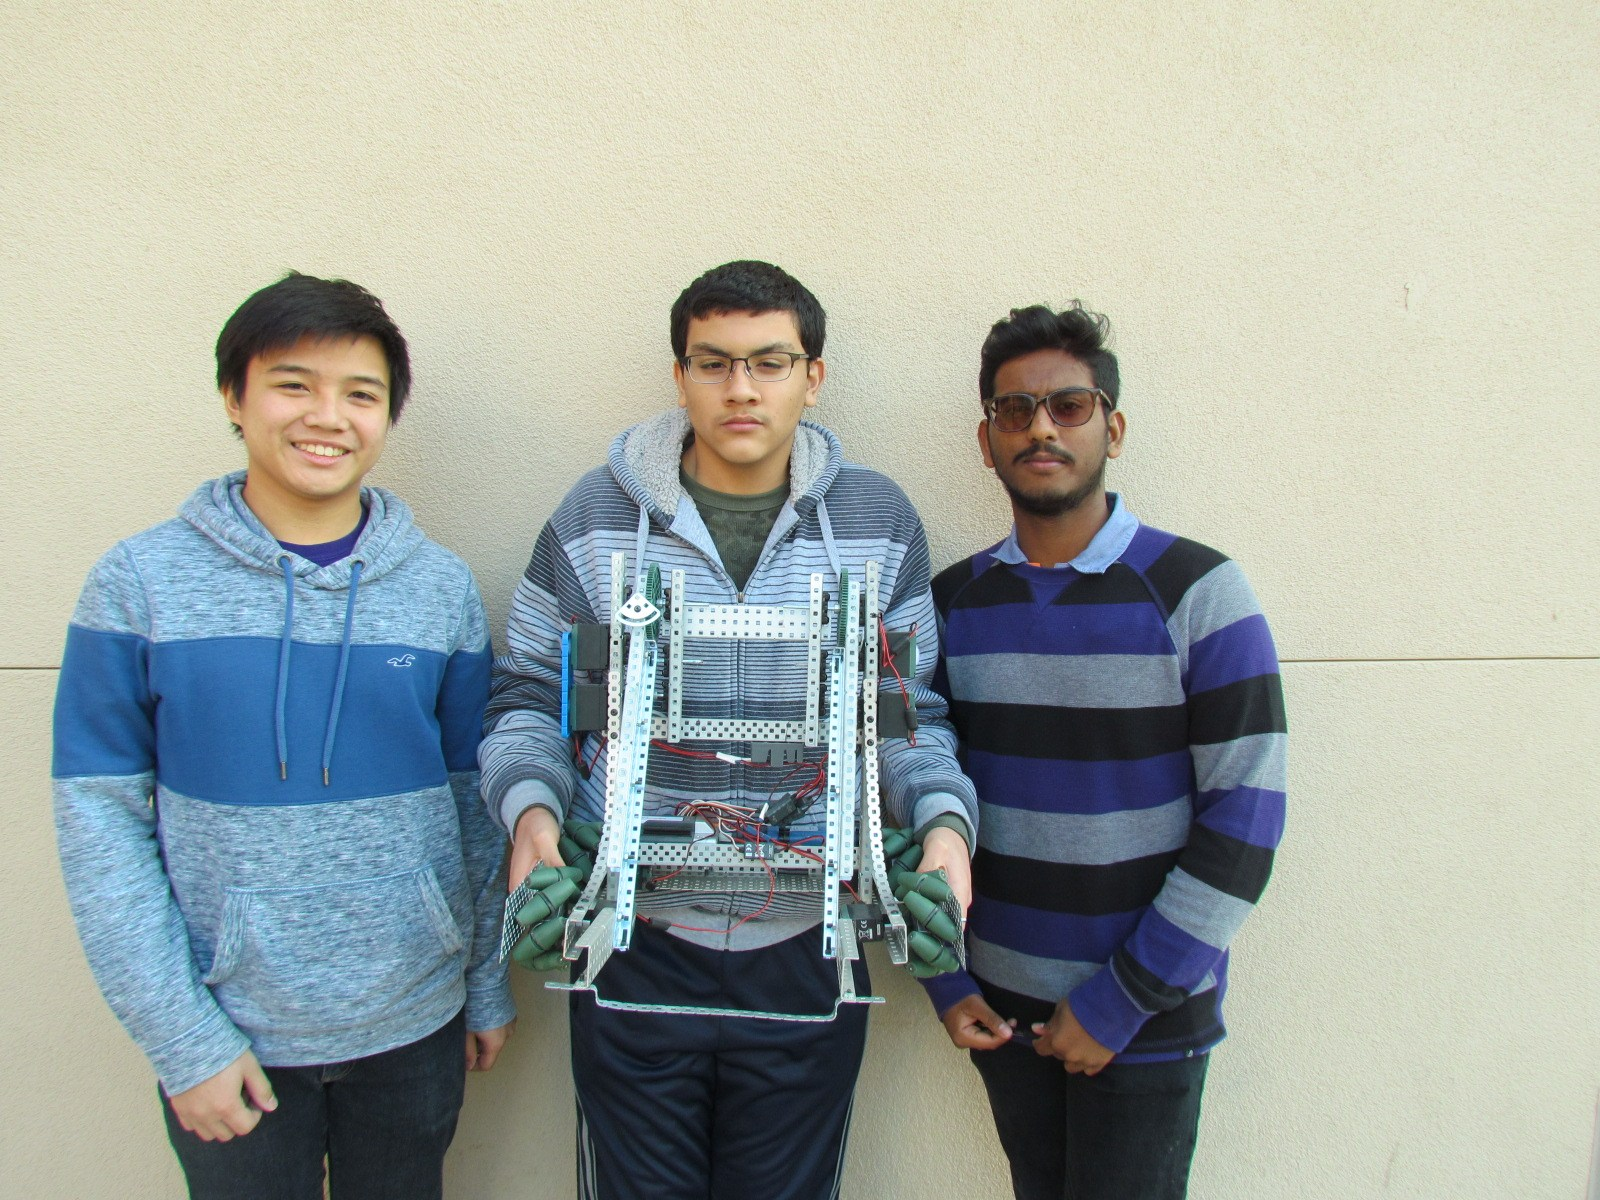 RHS Robotics Club